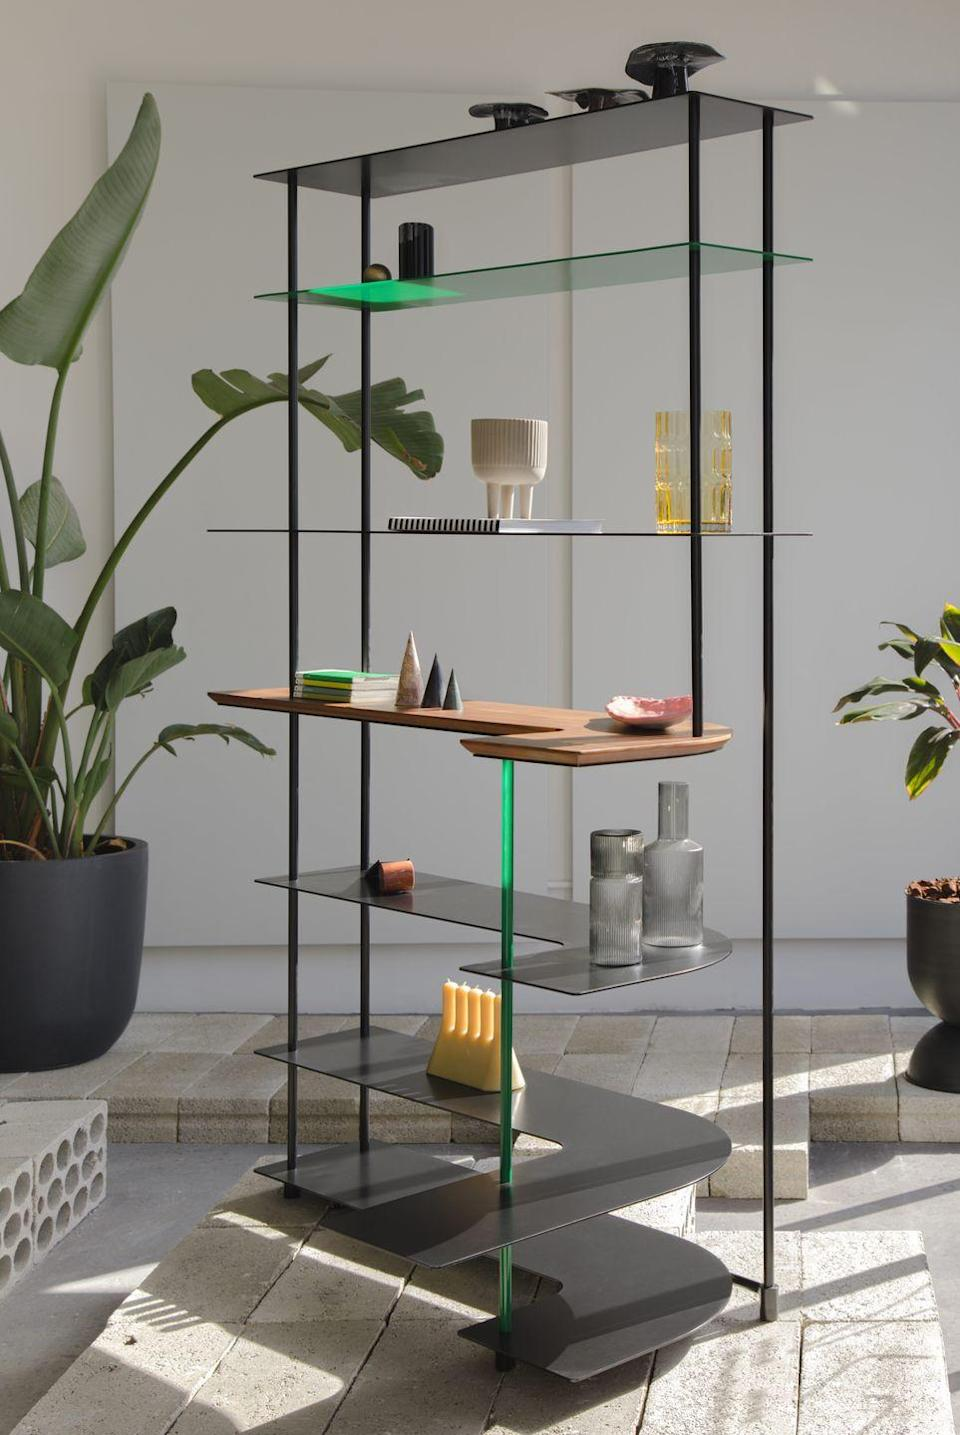 """<p>The latest series by Beirut-based design studio Borgi Bastormagi rethinks the corner in a bid to 'utilise those tricky spots that are forgotten and wasted in a home'. Its 'Shaping 90' collection aims to enhance dead spaces via three corner hugging pieces intended for daily use, including the 'Fillet' steel and walnut shelving unit. £1,765, <a href=""""https://www.borgibastormagi.com/"""" rel=""""nofollow noopener"""" target=""""_blank"""" data-ylk=""""slk:borgibastormagi.com"""" class=""""link rapid-noclick-resp"""">borgibastormagi.com</a></p>"""